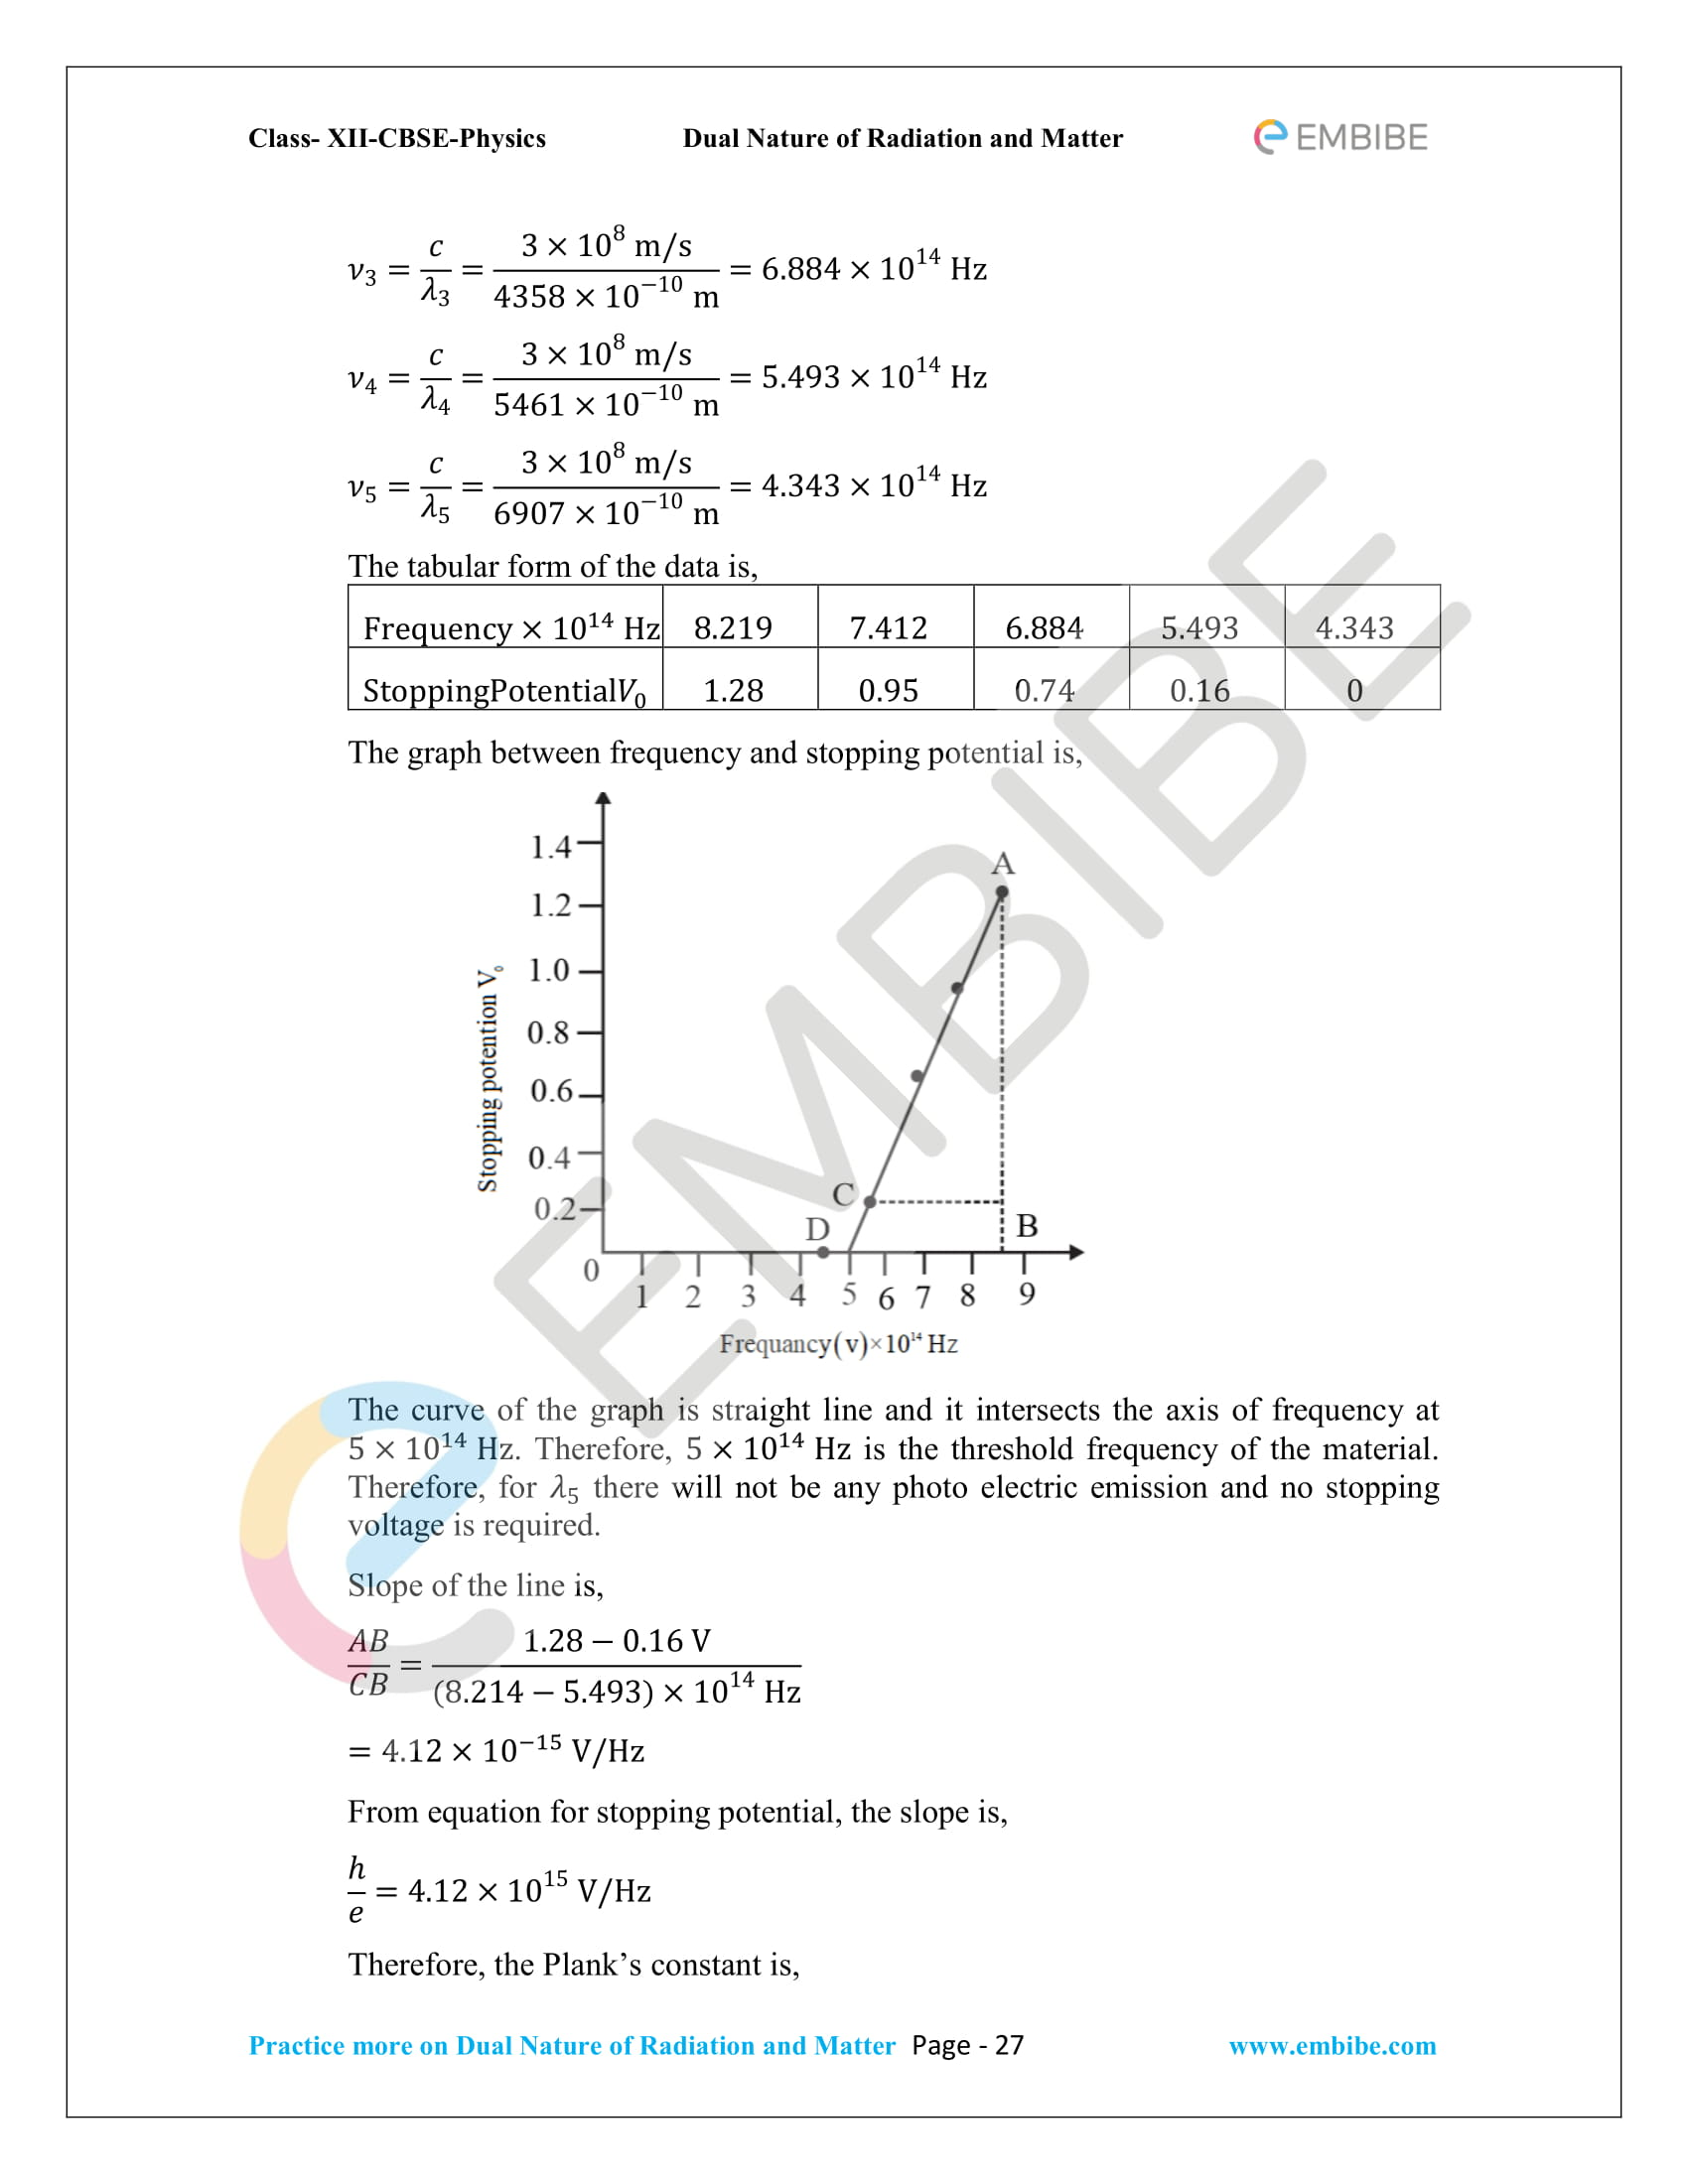 NCERT_Grade 12_Physics_Ch_11_Dual Nature of Radiation and Matter-27